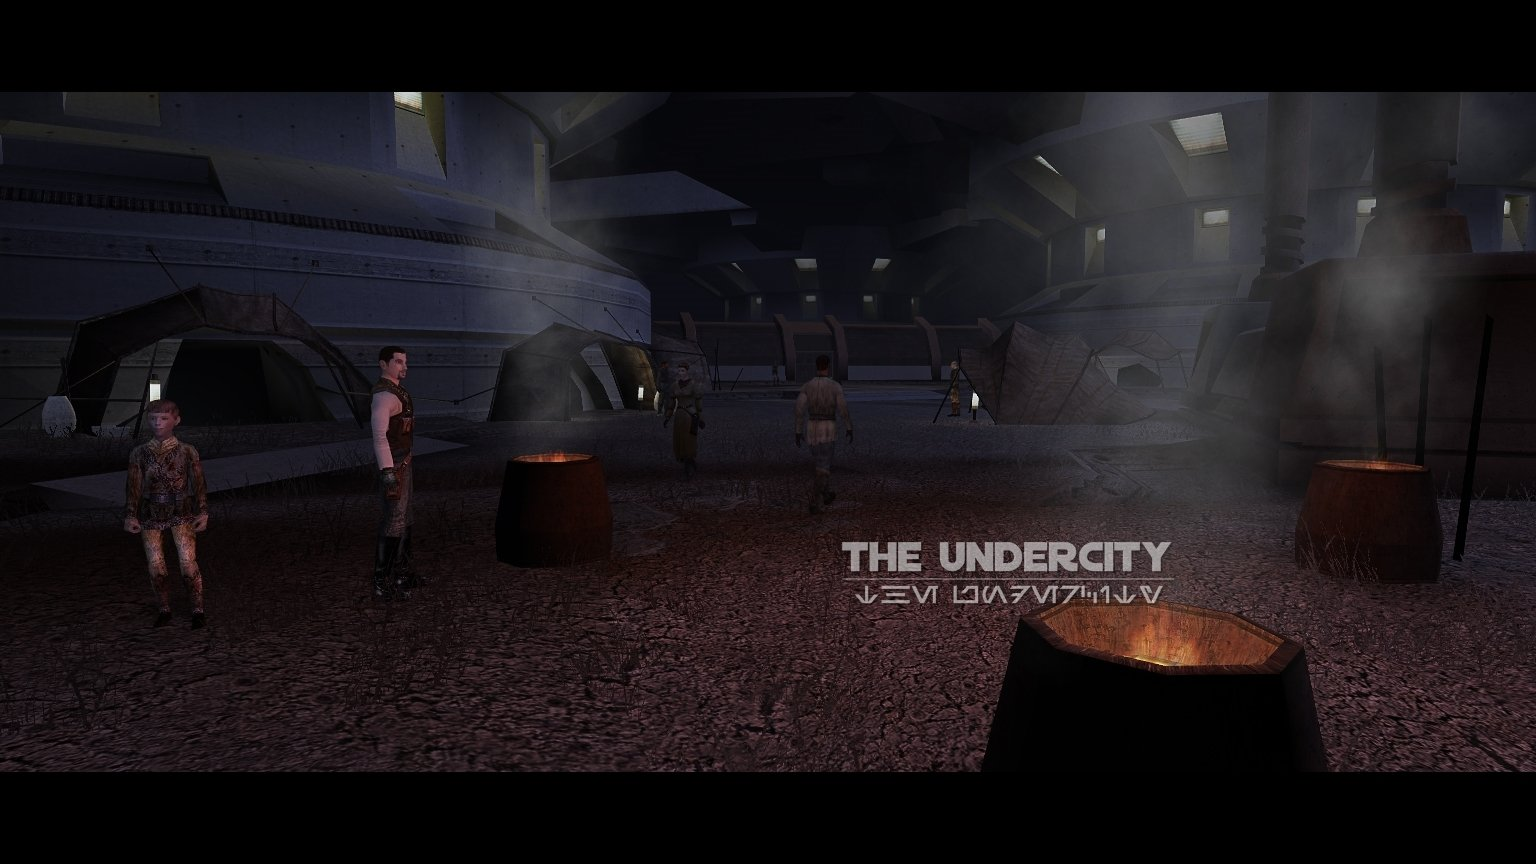 The Undercity: Outcasts